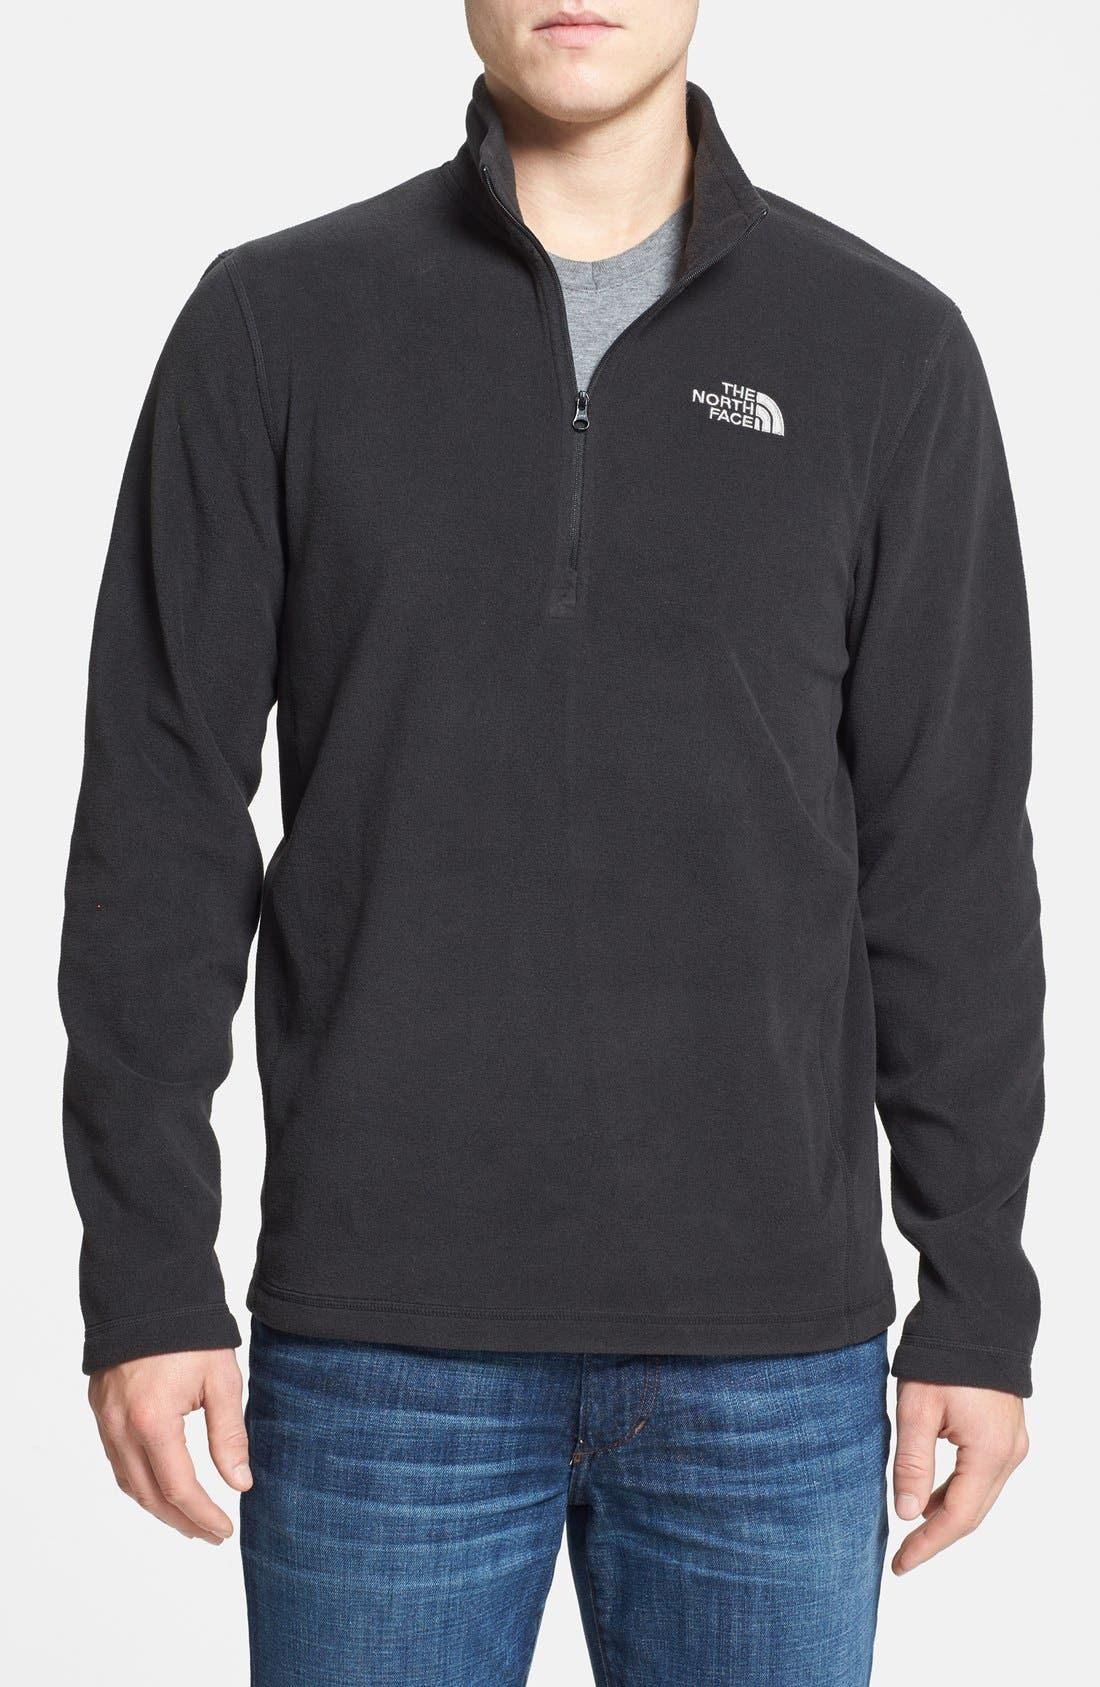 THE NORTH FACE 'TKA 100 Glacier' Quarter Zip